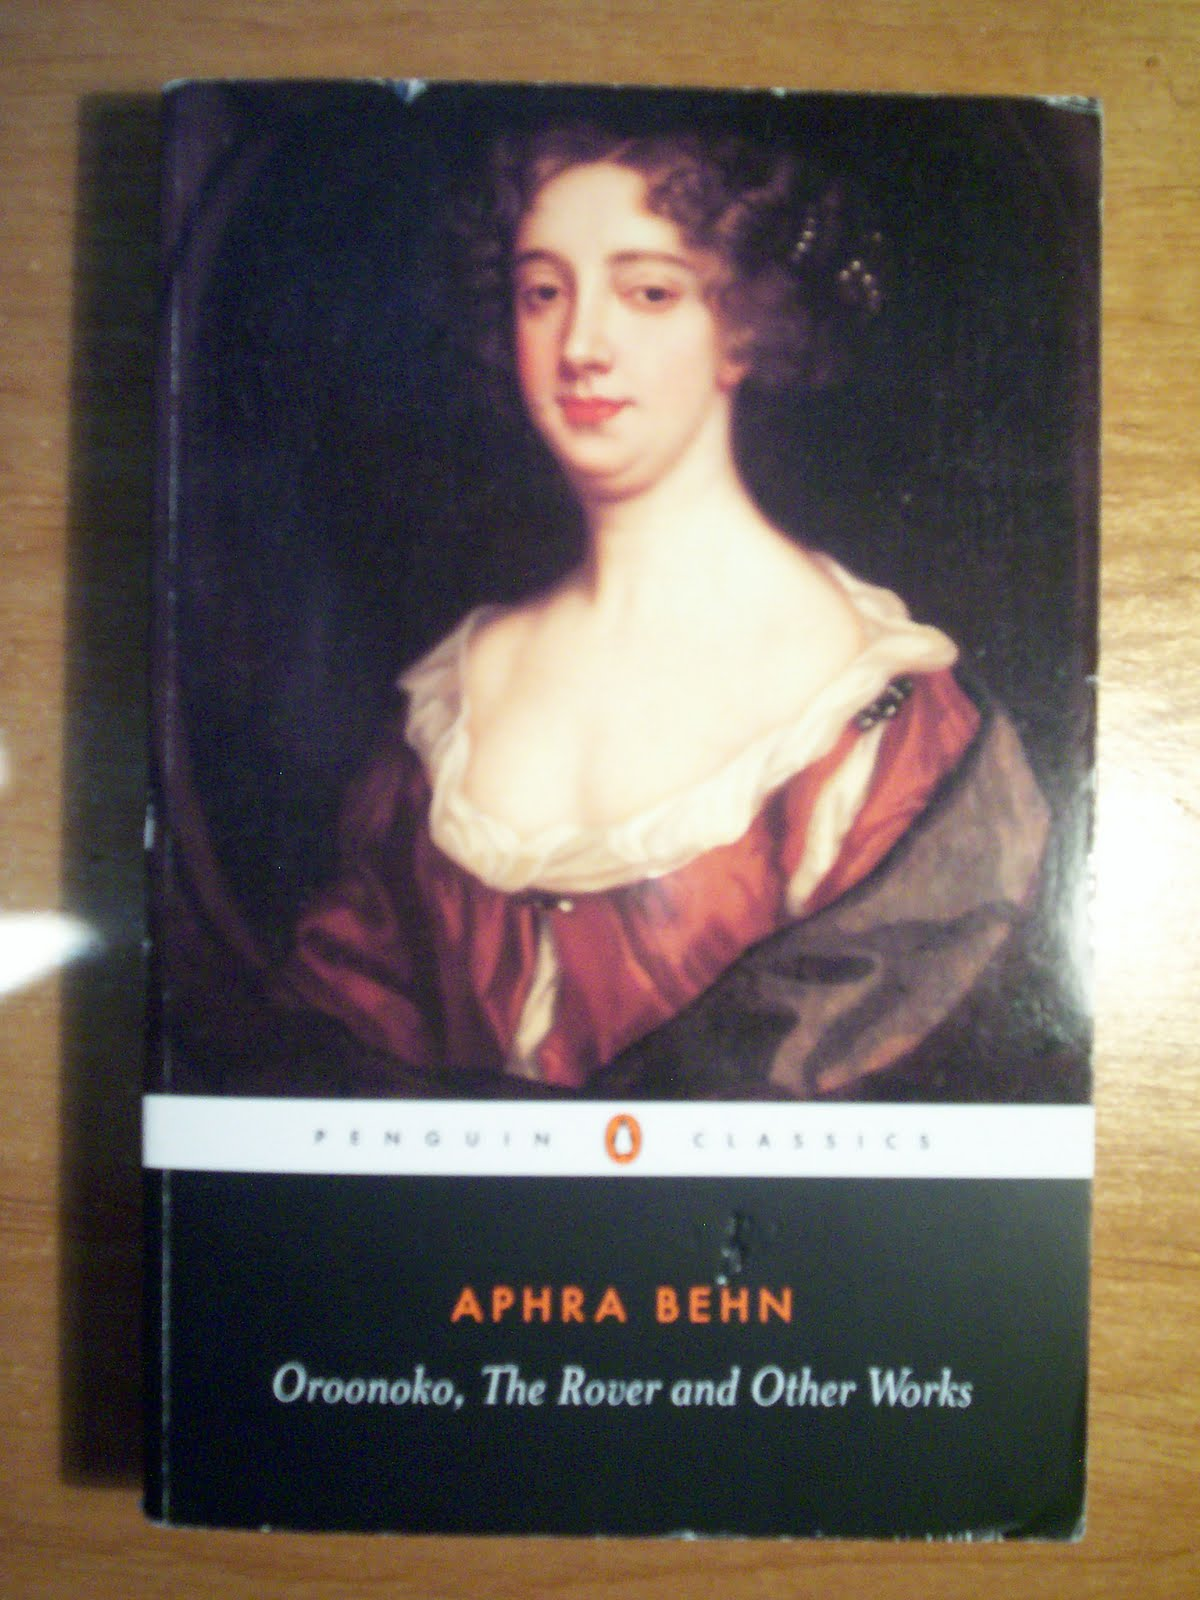 an analysis of african slavery in the west indies in oroonoko by aphra behn Aphra behn biography aphra behn is often works was oroonoko, a novel about an african prince over many islands in the west indies and the.